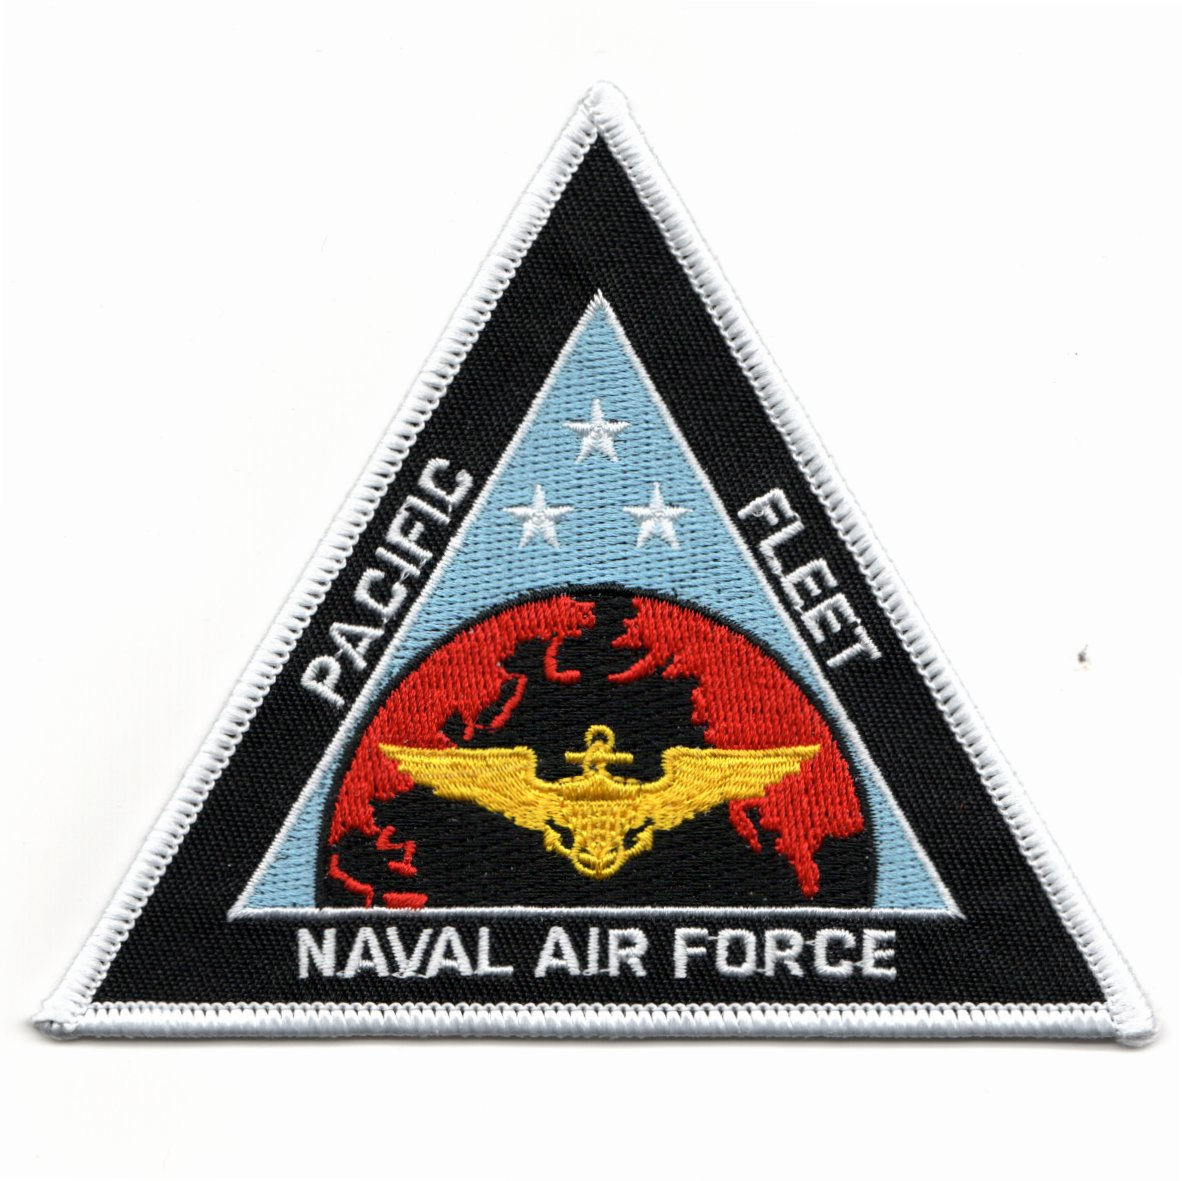 NAVAL AIR FORCE - PACIFIC Fleet (Tri)